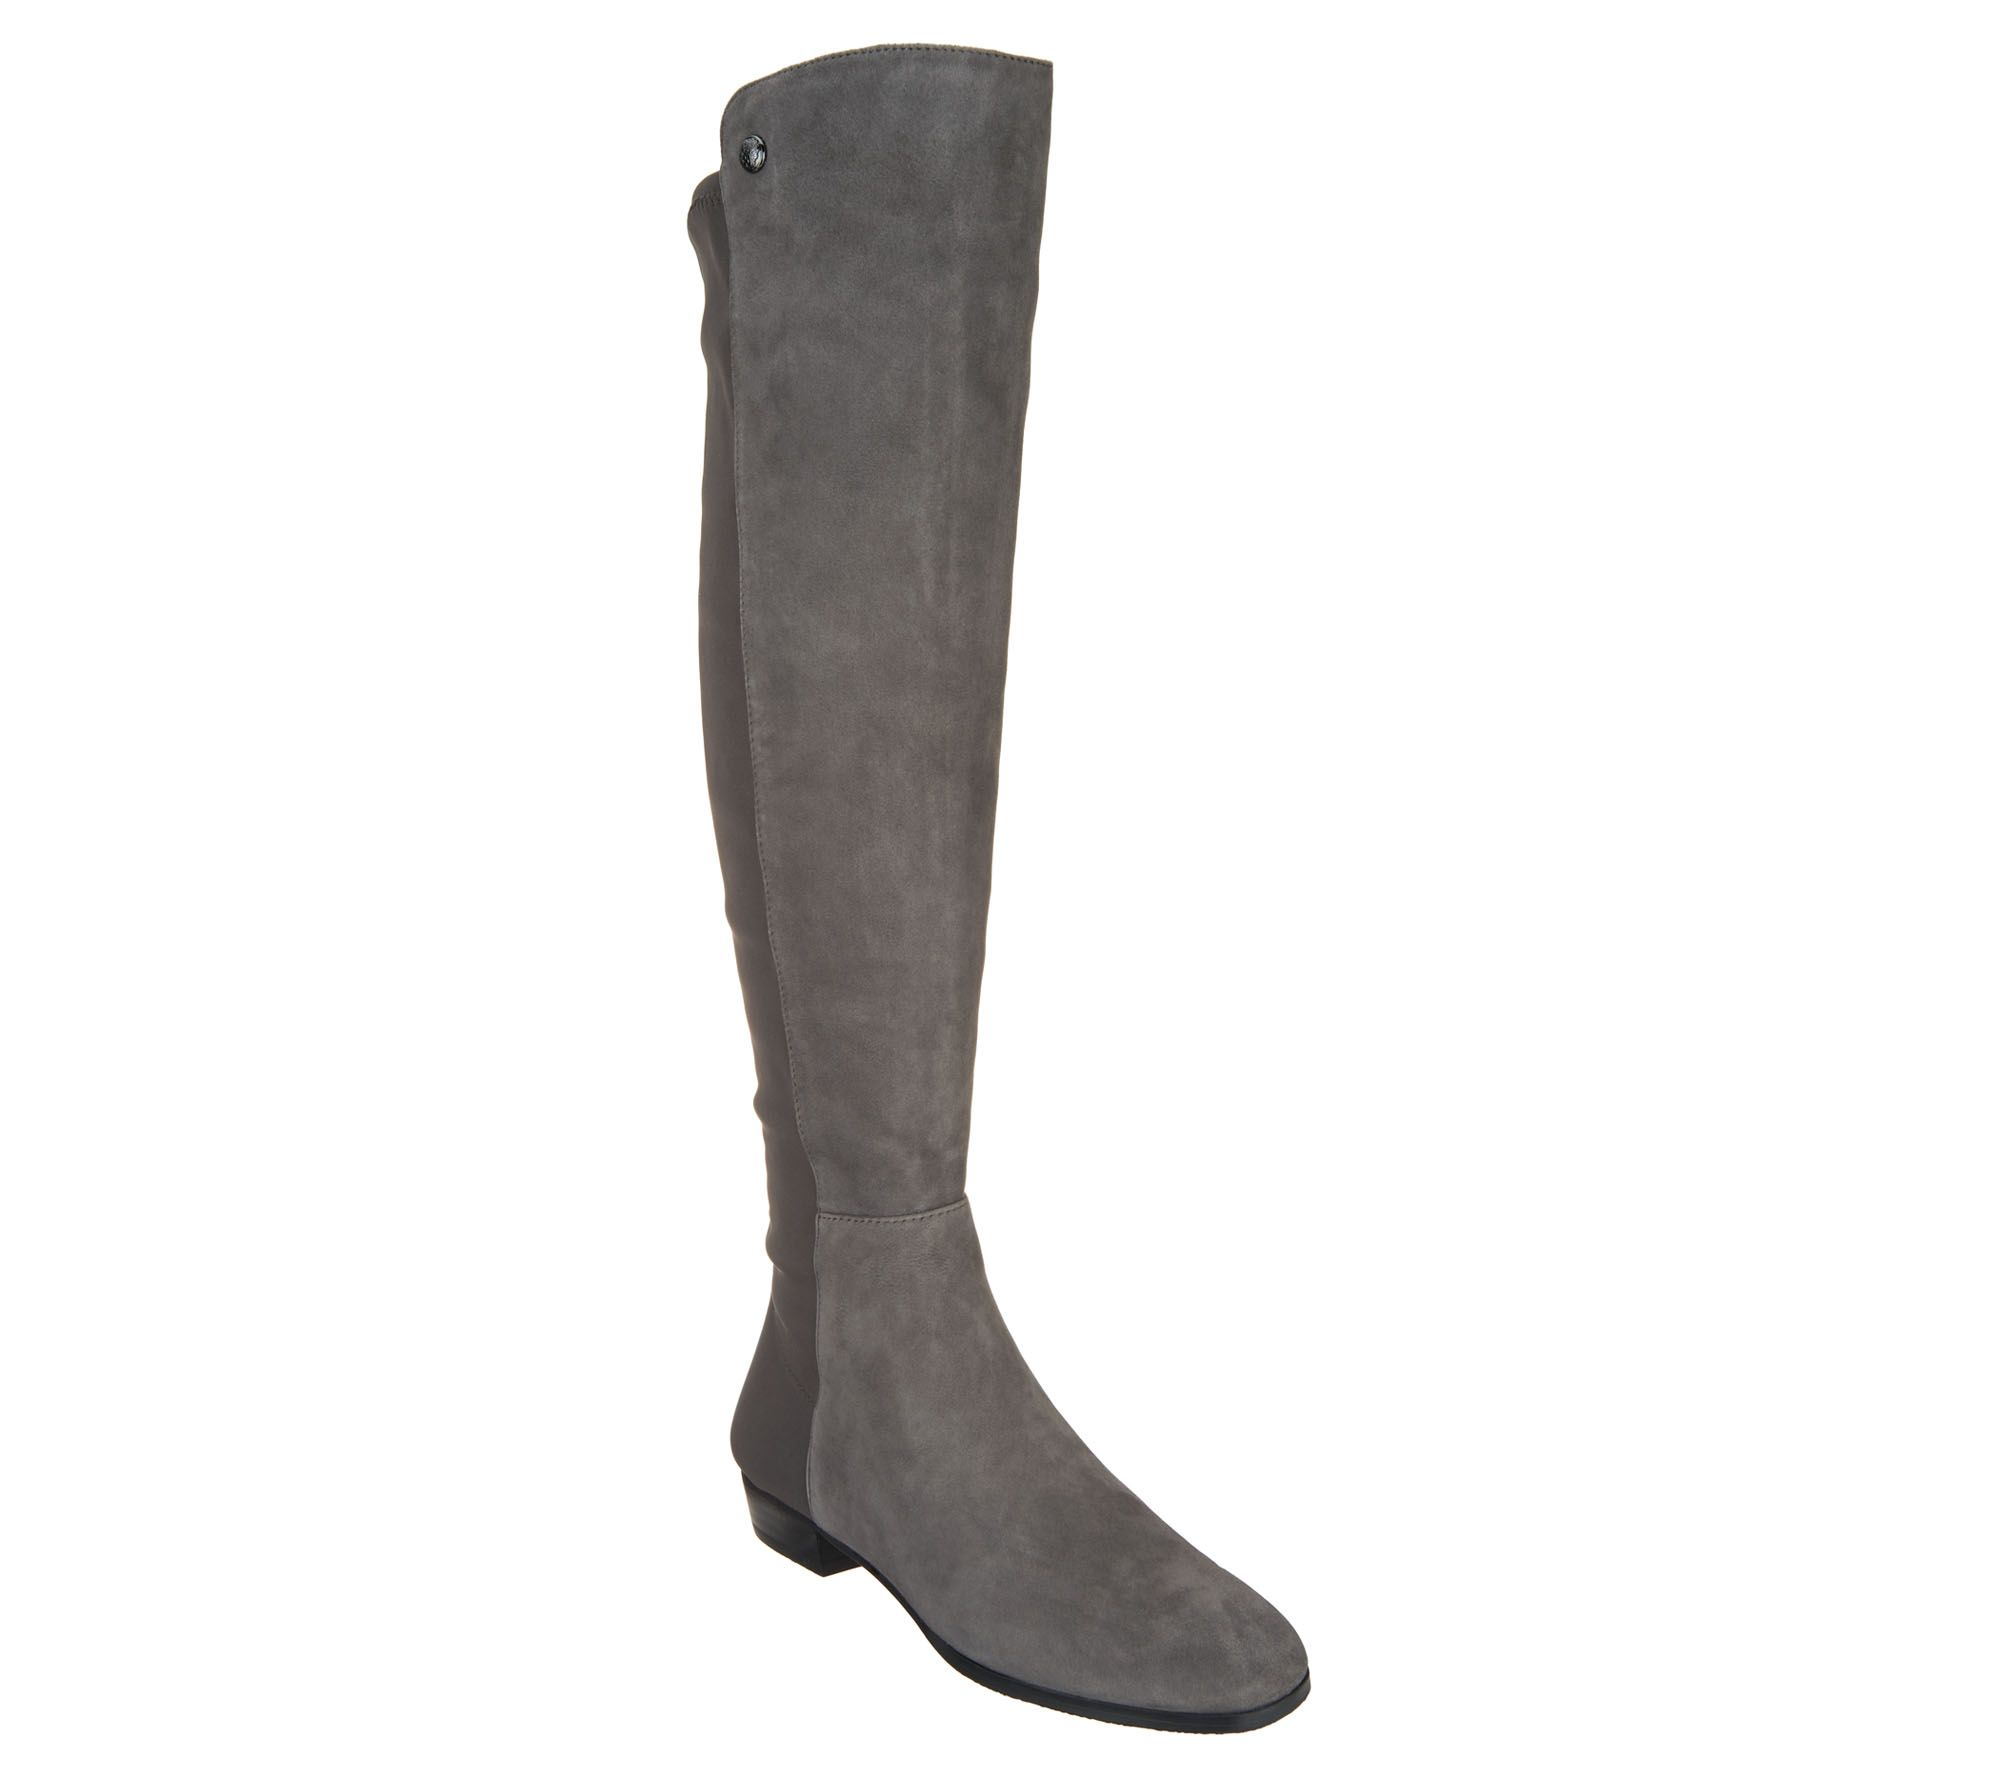 d30ade219bc Vince Camuto Wide Calf Leather Tall Shaft Boots - Karita — QVC.com